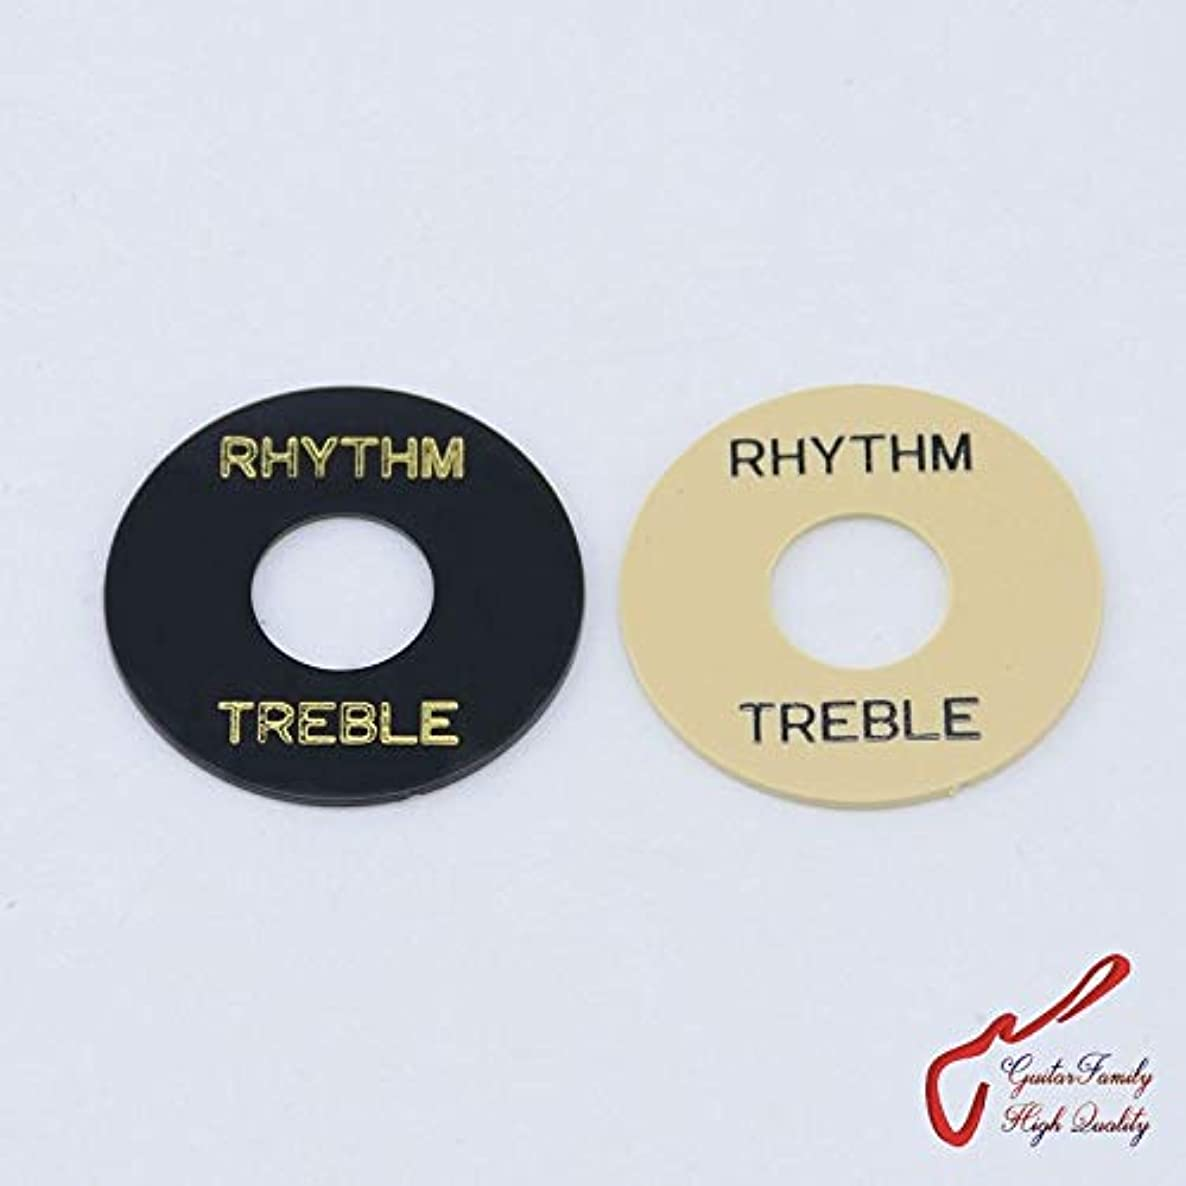 1 Piece GuitarFamily Electric Guitar Pickup Toggle Switch Rhythm/Treble Surround Ring Plate (#0099) MADE IN KOREA